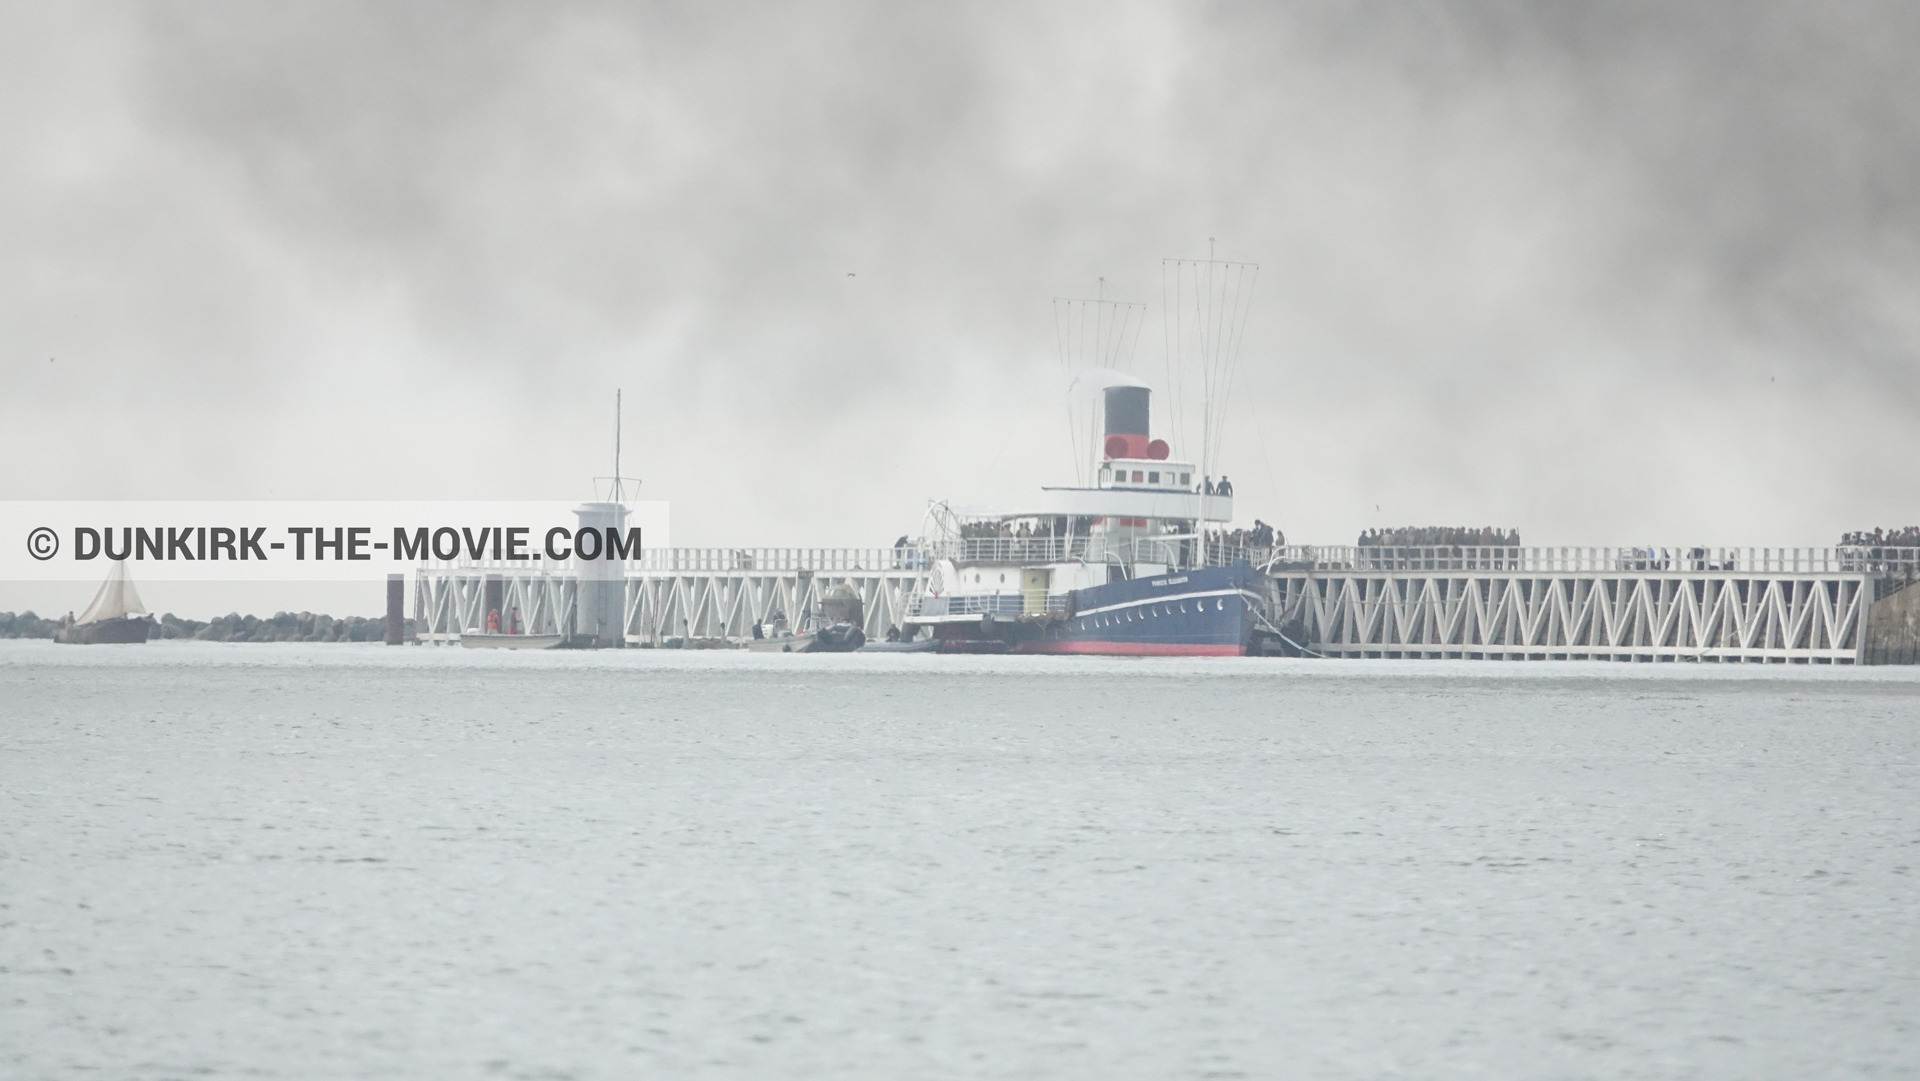 Picture with grey sky, decor, supernumeraries, black smoke, EST pier, calm sea, Princess Elizabeth,  from behind the scene of the Dunkirk movie by Nolan